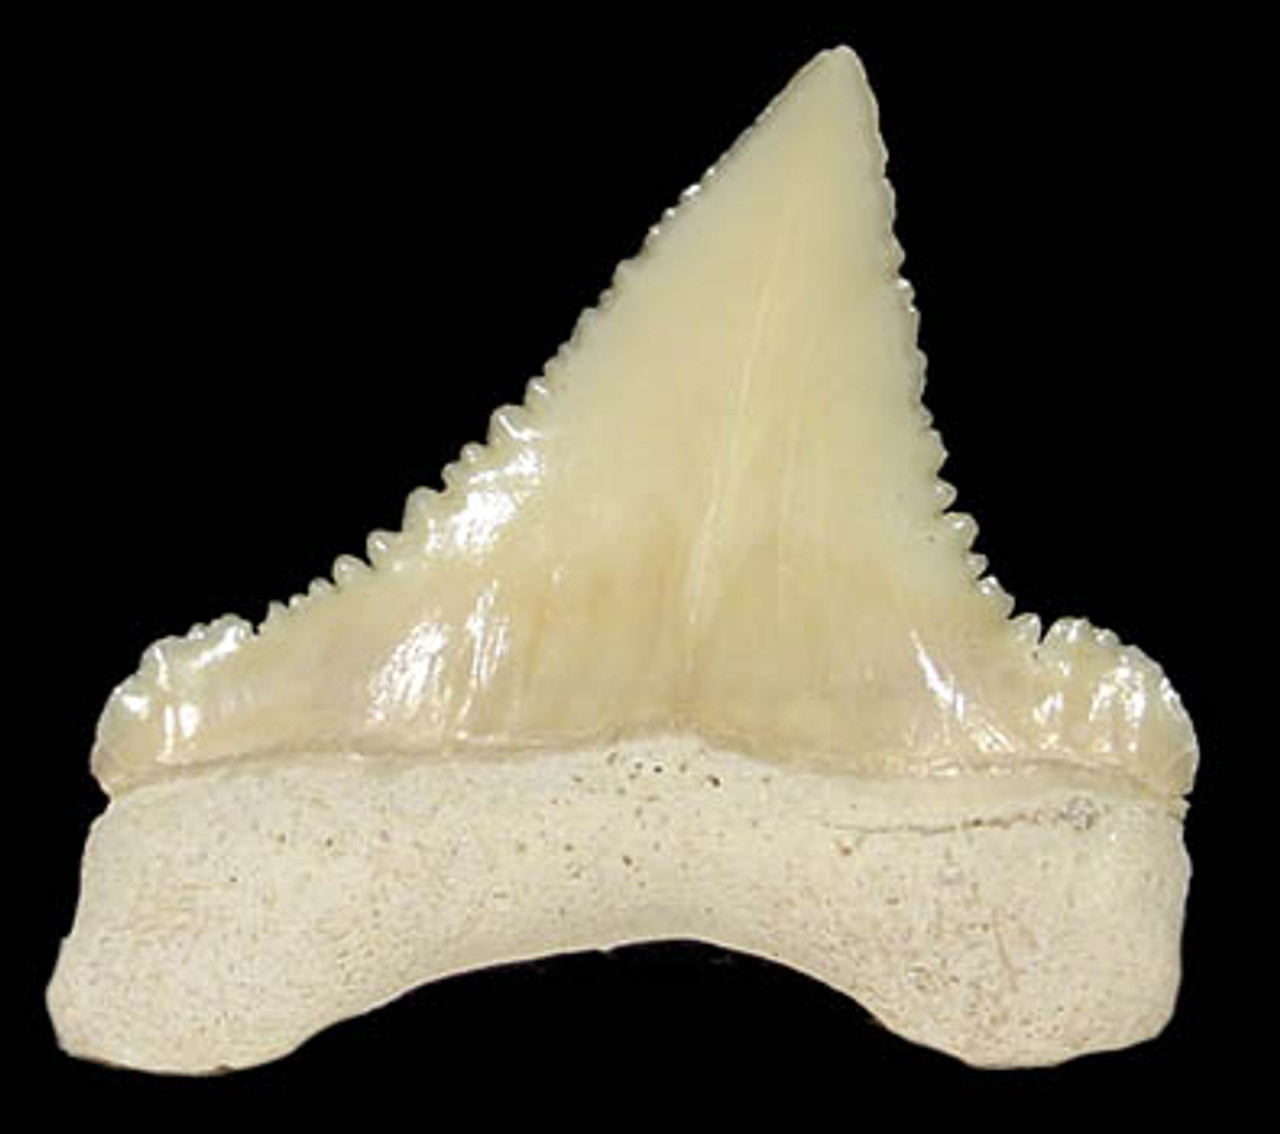 SH5-005 - INTACT PALEOCARCHARODON ORIENTALIS ( PYGMY WHITE SHARK ) FOSSIL TOOTH